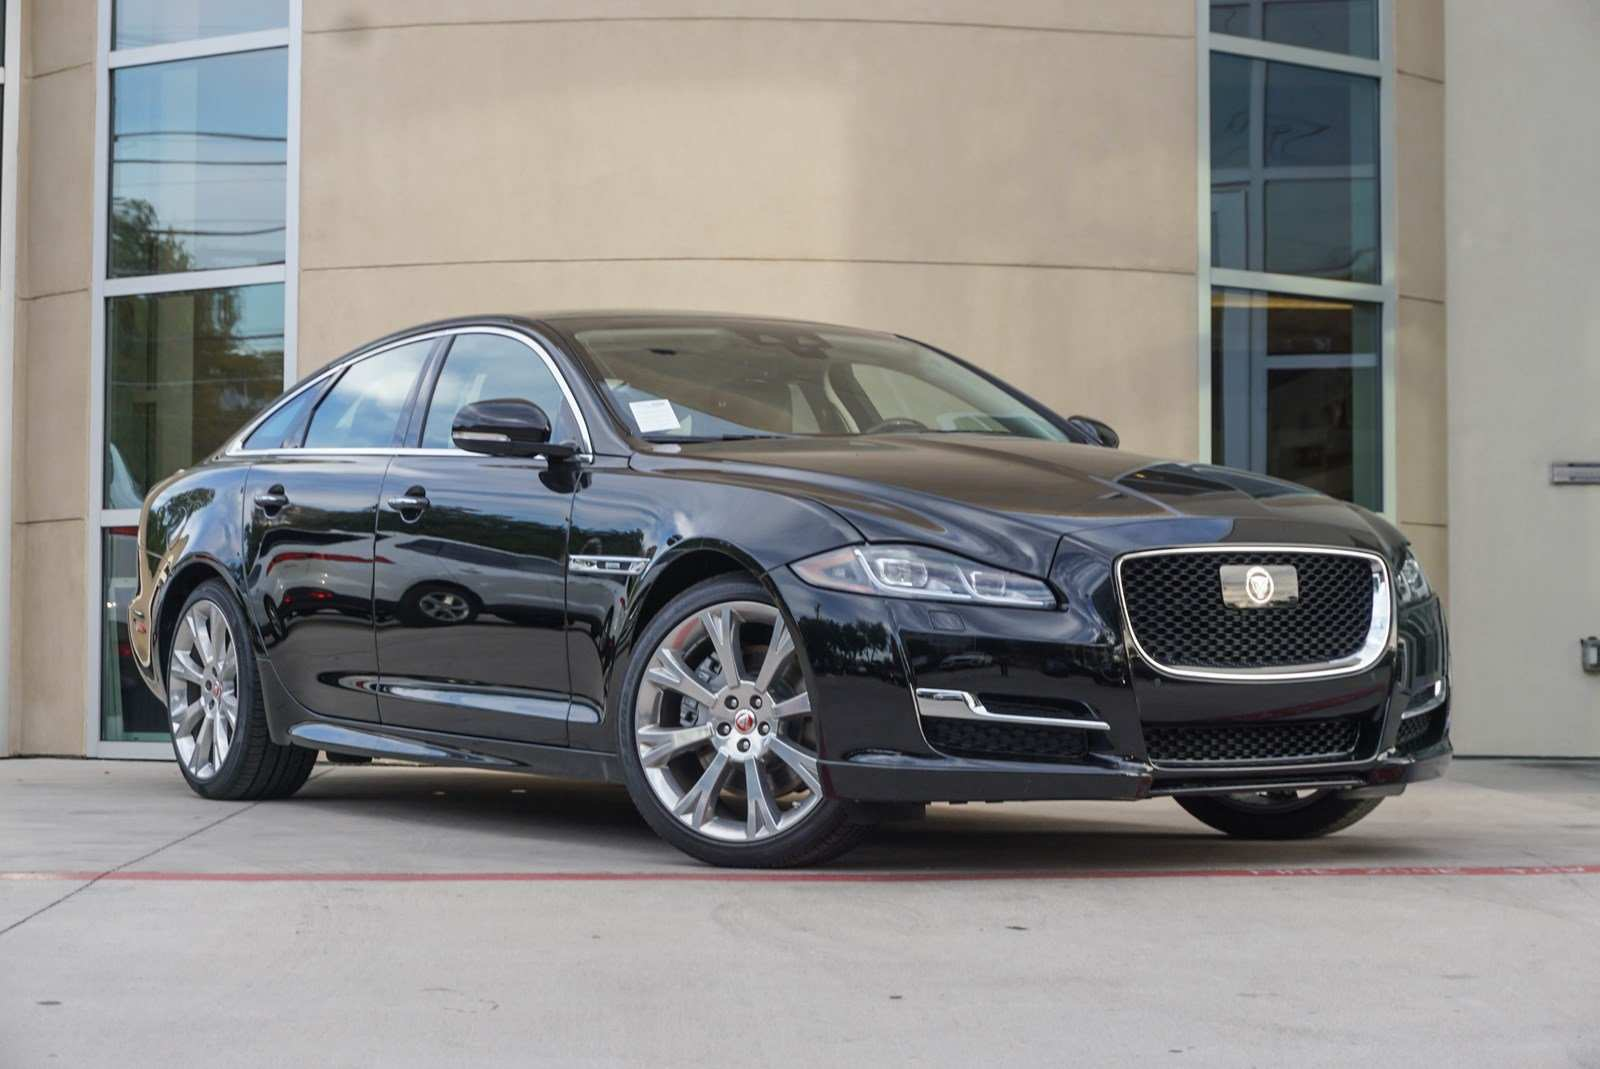 98 A 2019 Jaguar Sedan Picture